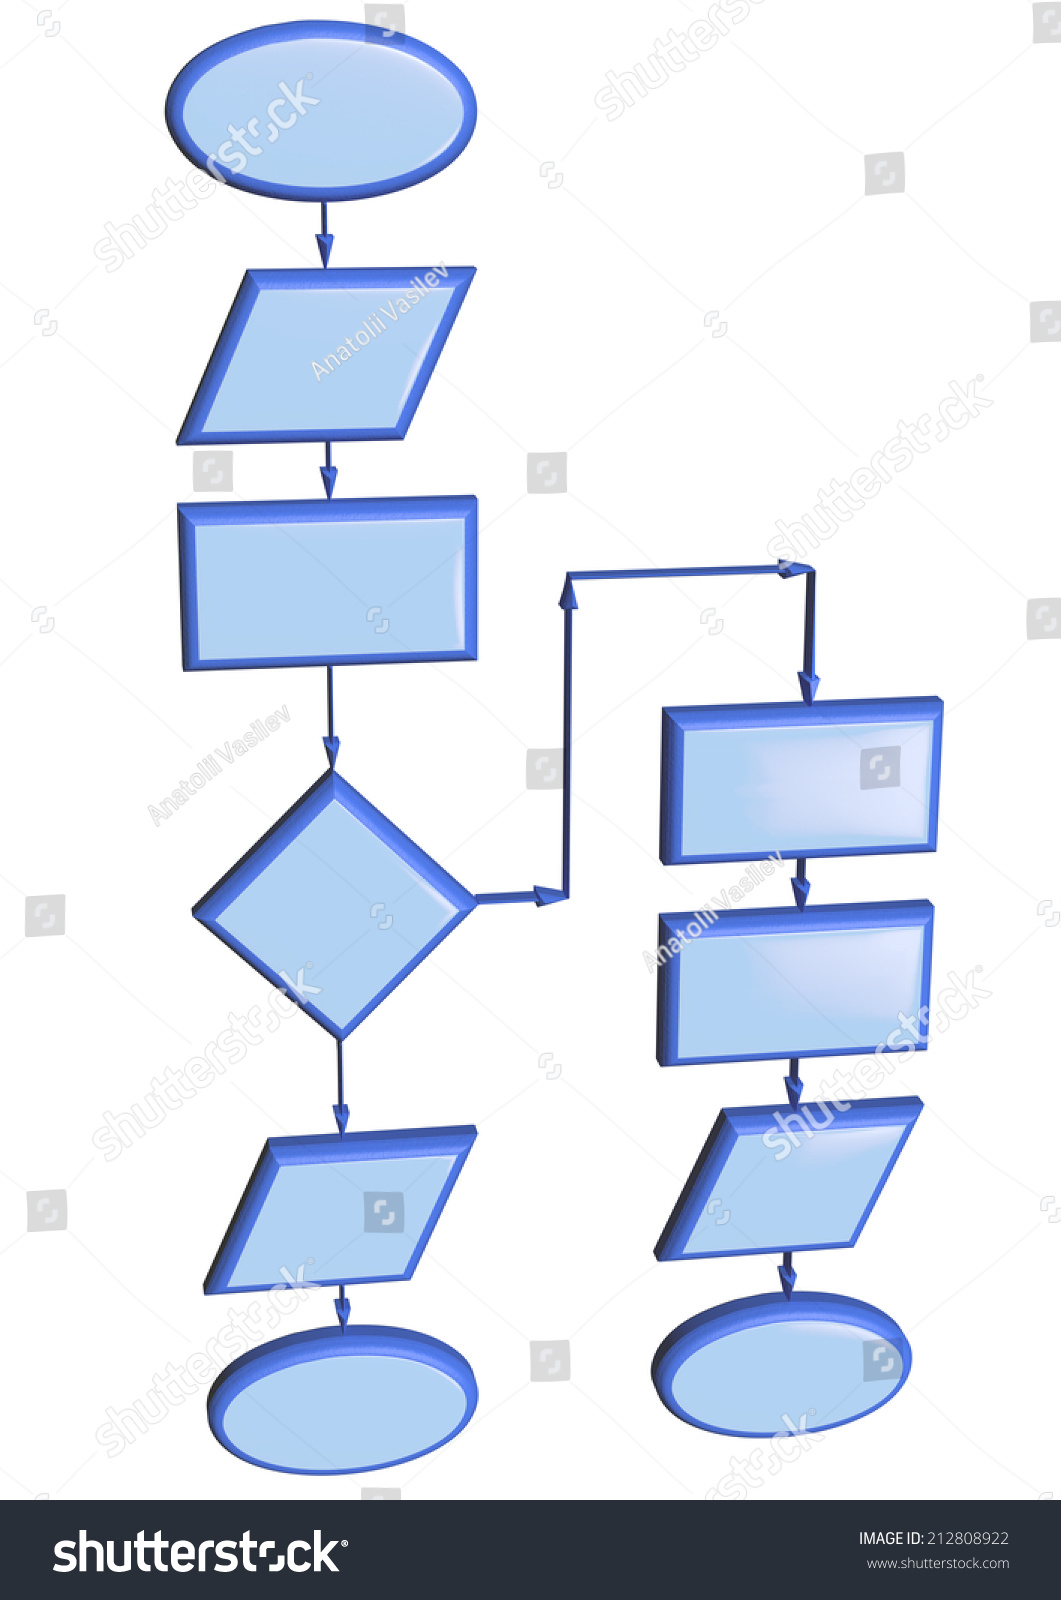 Project Flow Chart Diagram Use Programming Stock Illustration